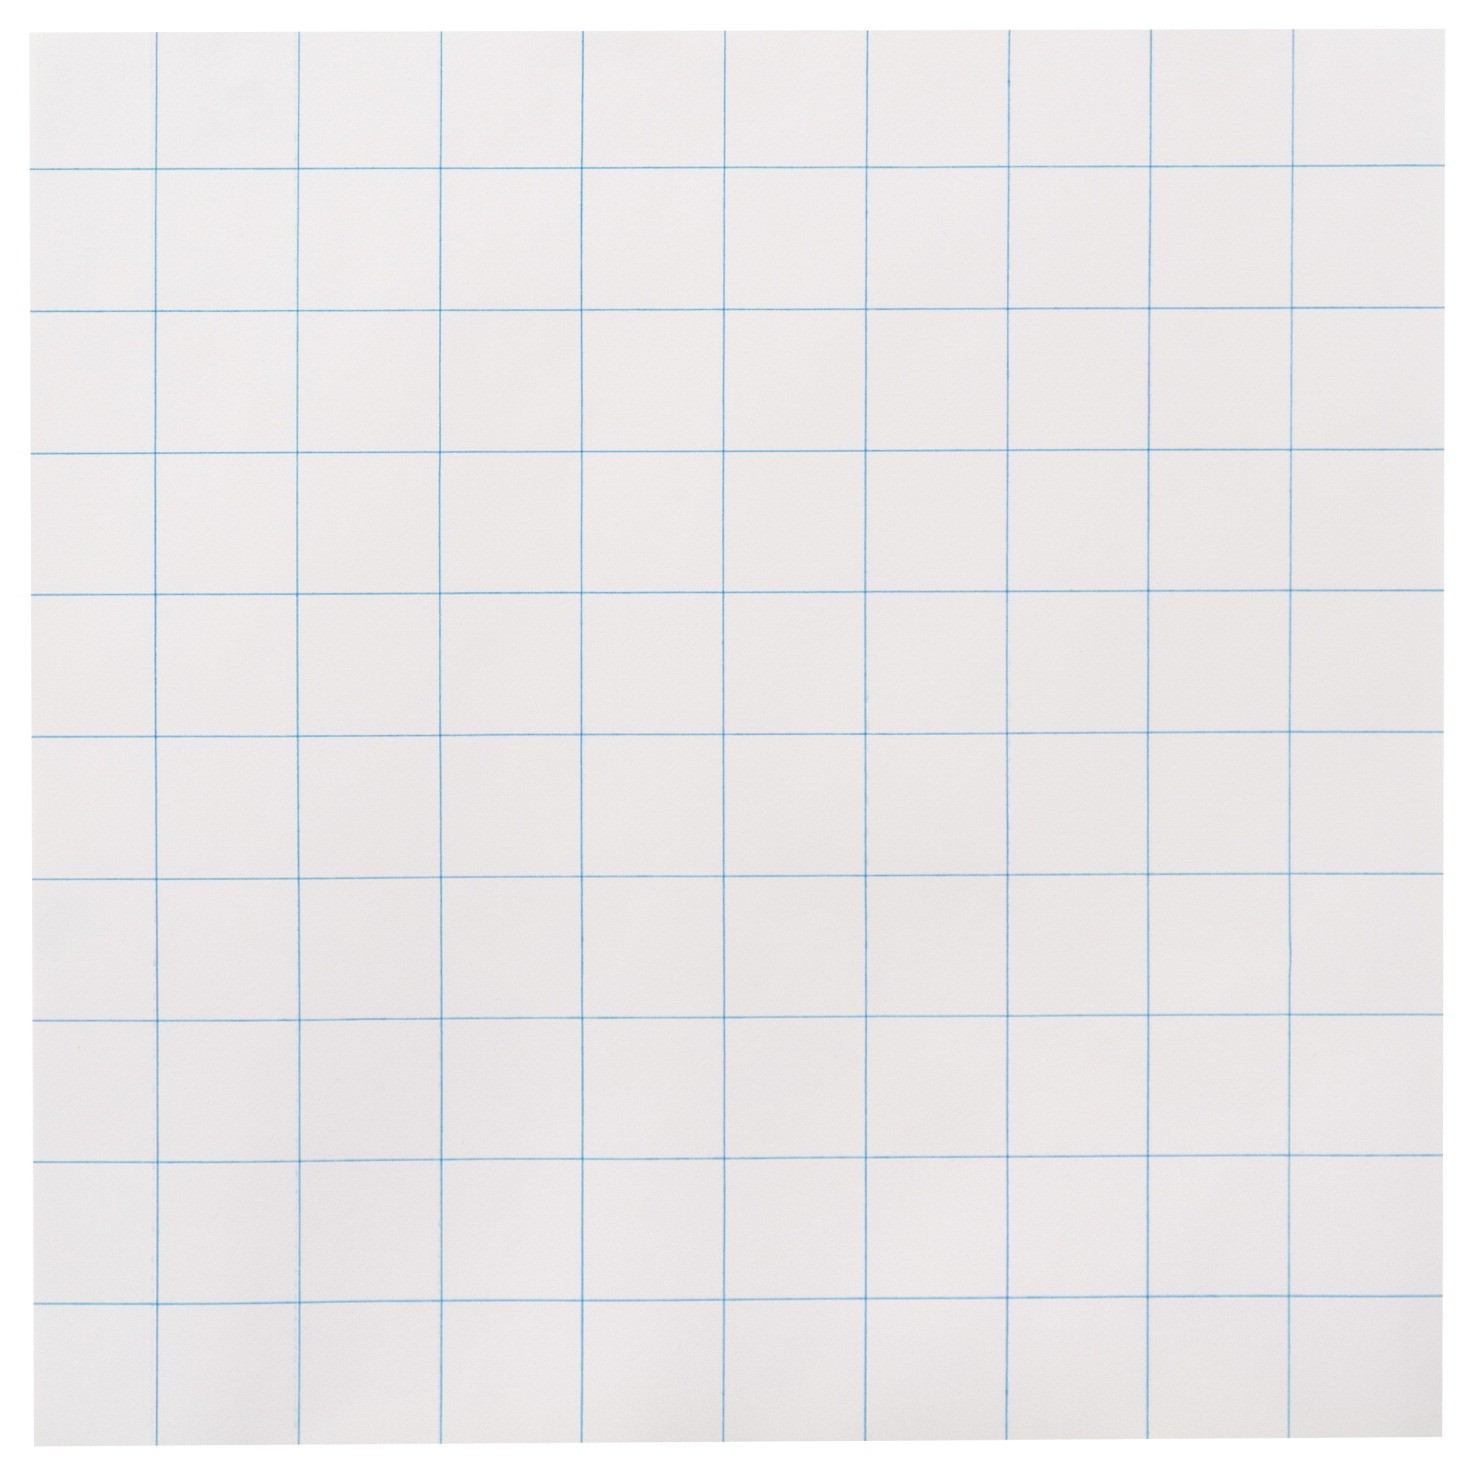 School Smart 3-Hole Punched Graph Paper, 1 in Ruling, Double-Sided, 10 X 10 in, 15 lb, White, Pack of 500